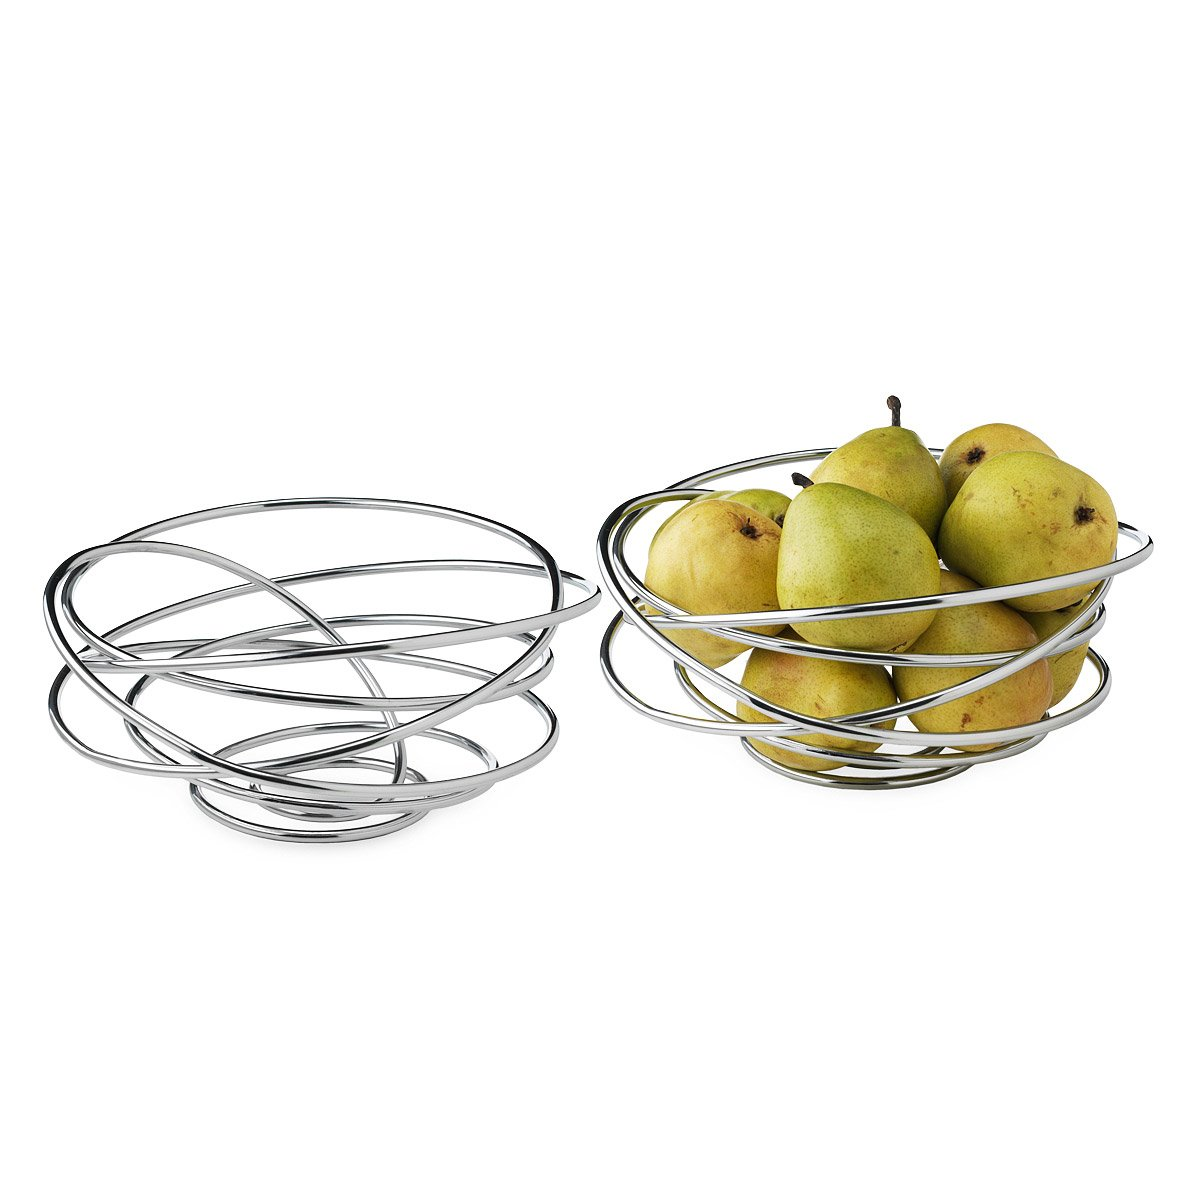 Modern Metal Fruit Bowl Loop De Loop Bowl Made From Single Piece Of Chrome Wire Fruits